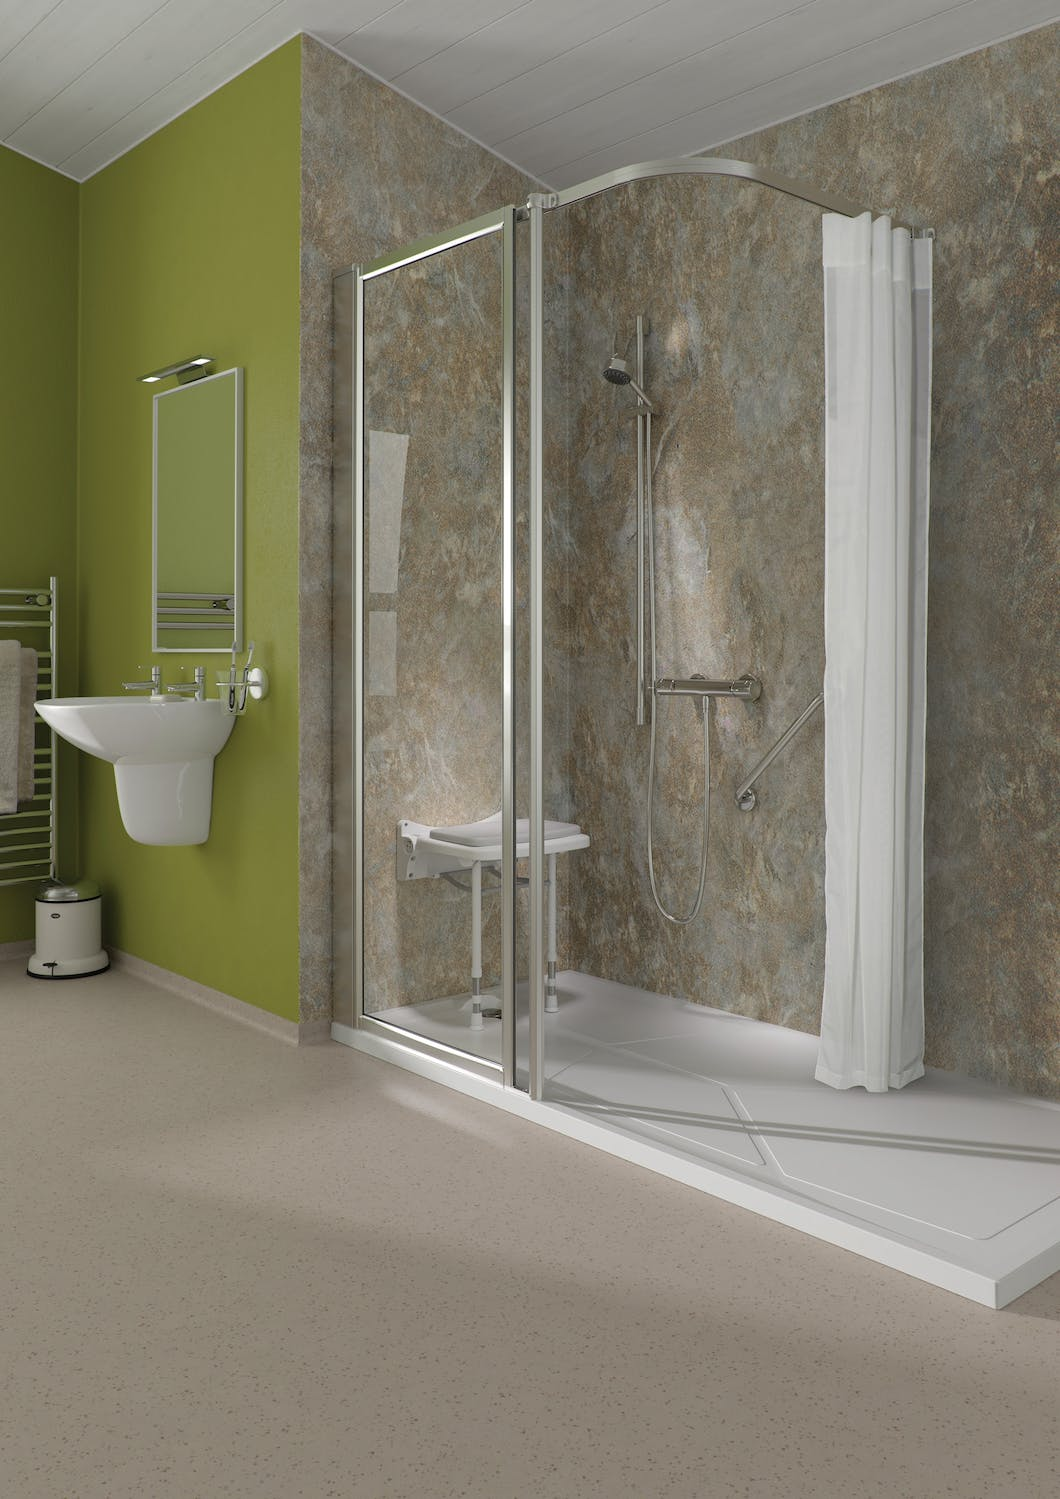 Showcase your safe & stylish bathroom in its finest light.